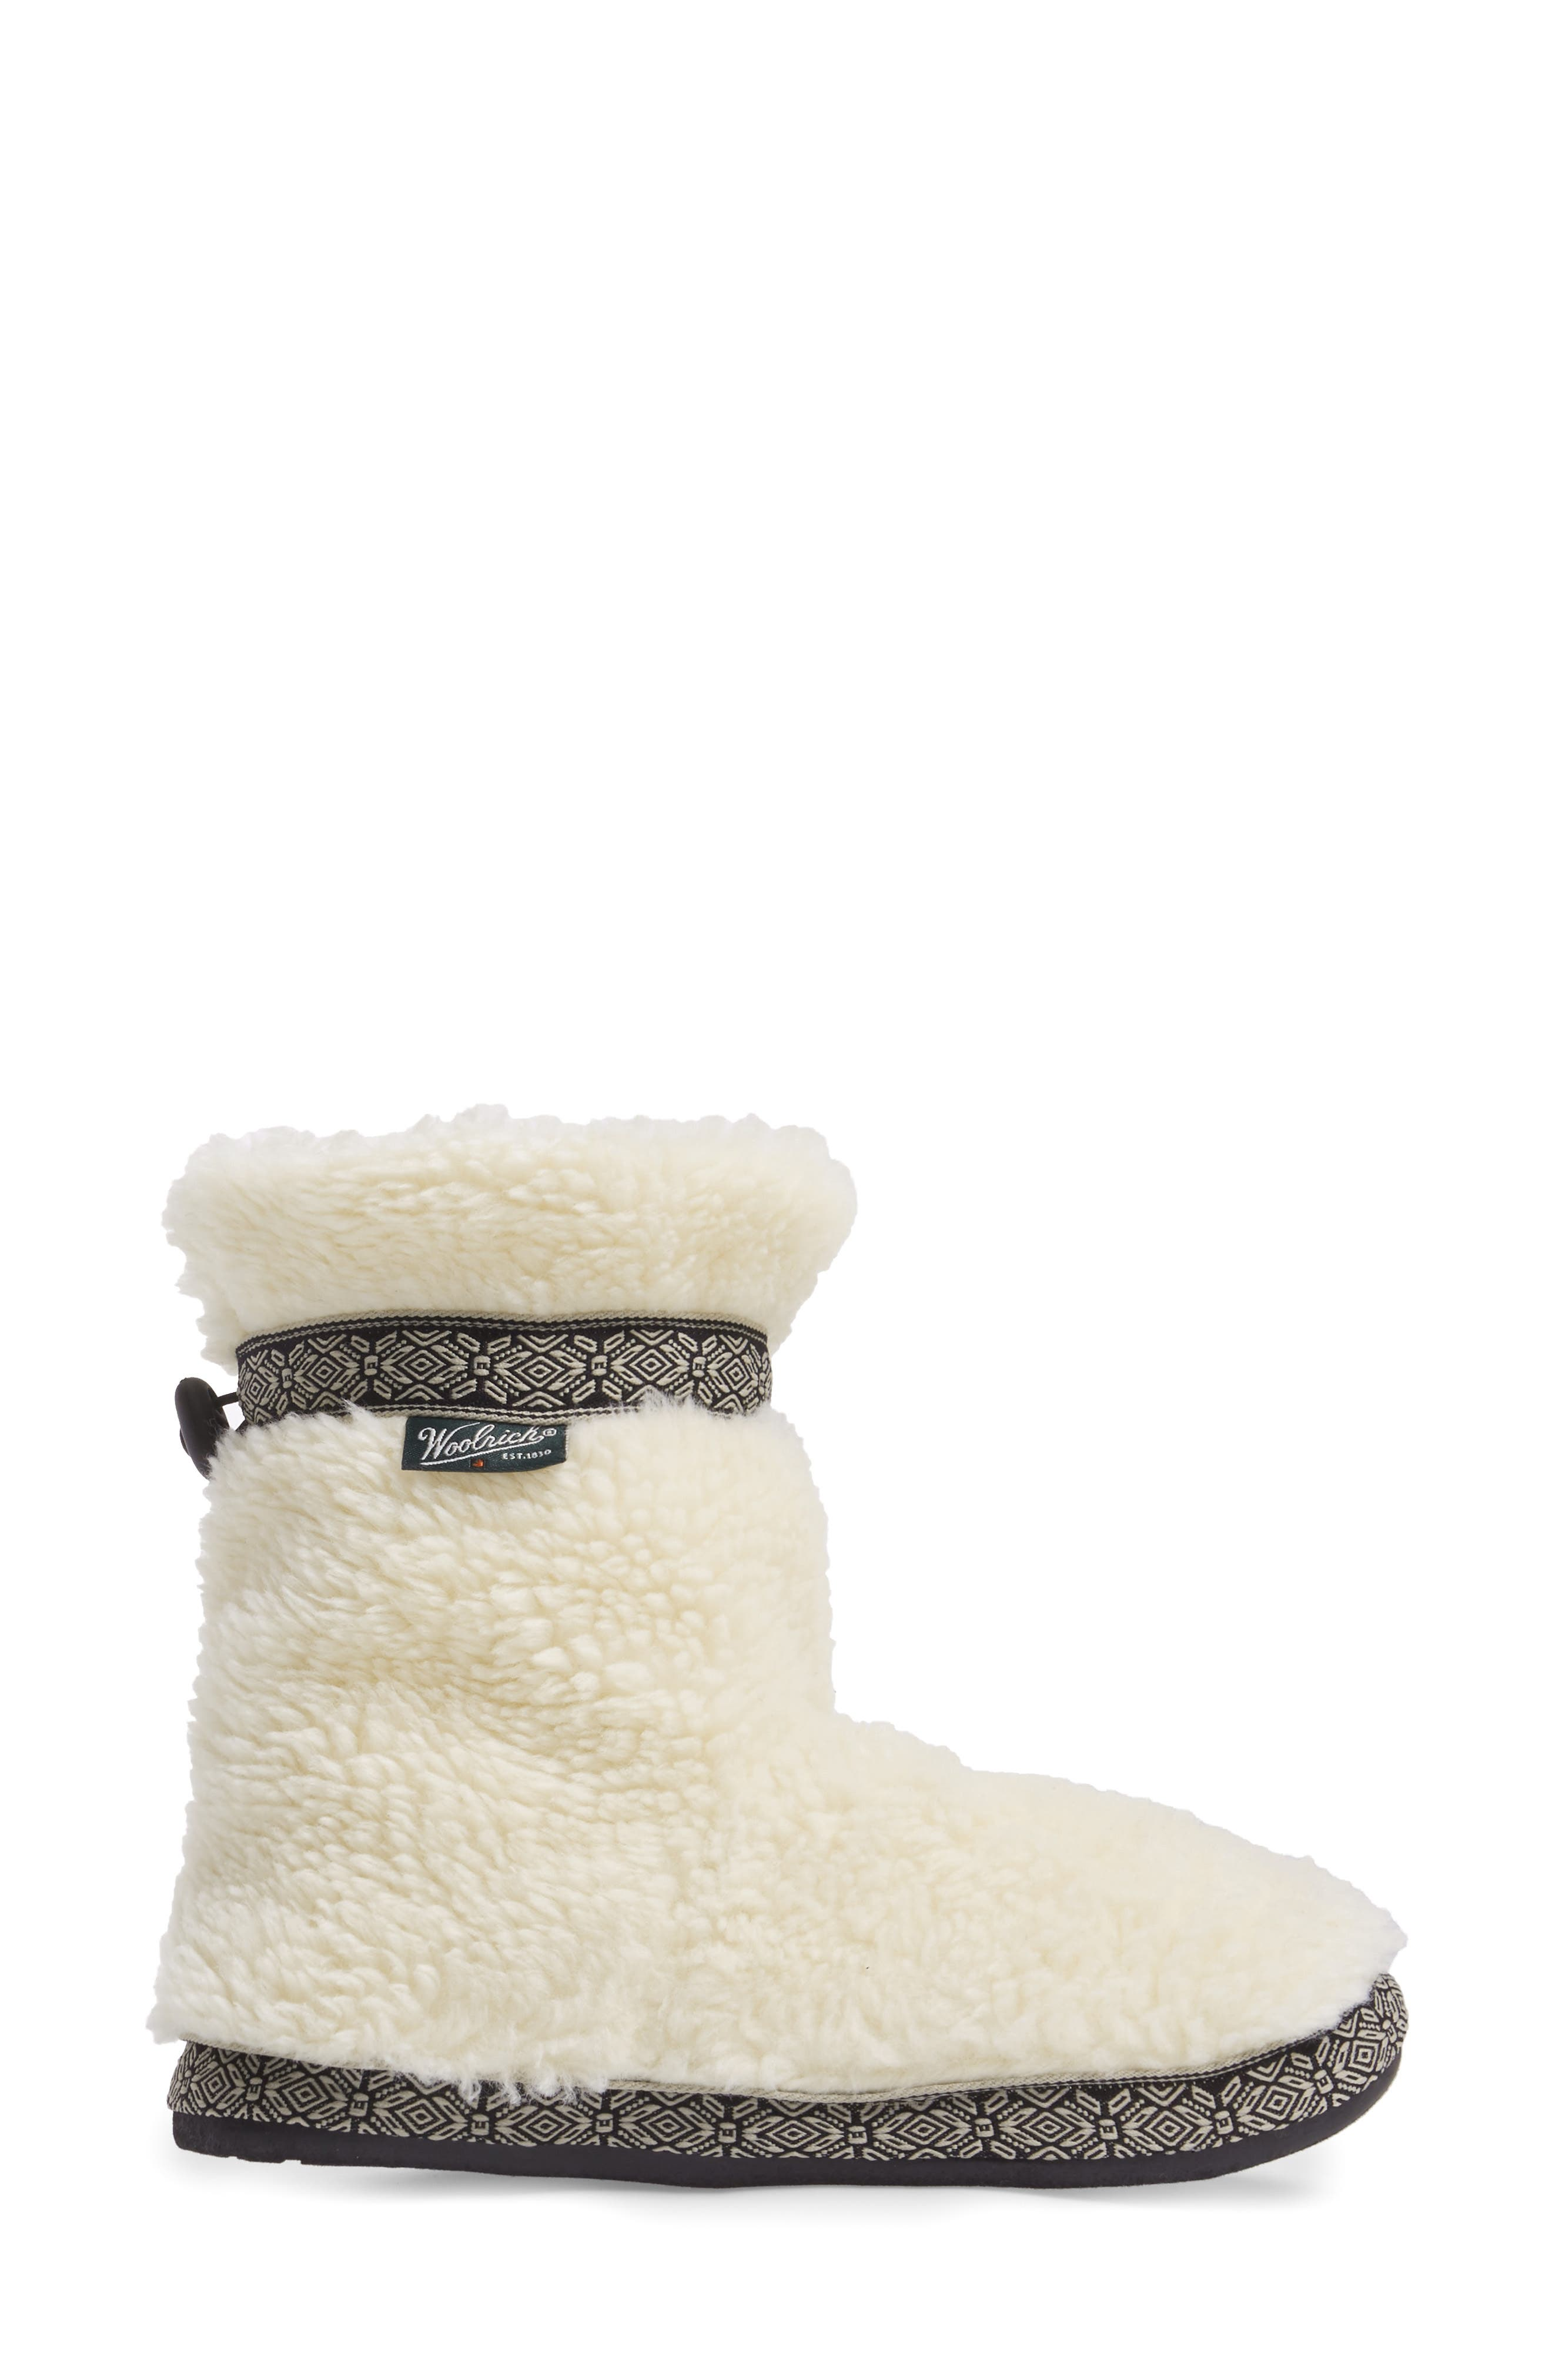 Alternate Image 3  - Woolrich Whitecap Slipper Bootie (Women)